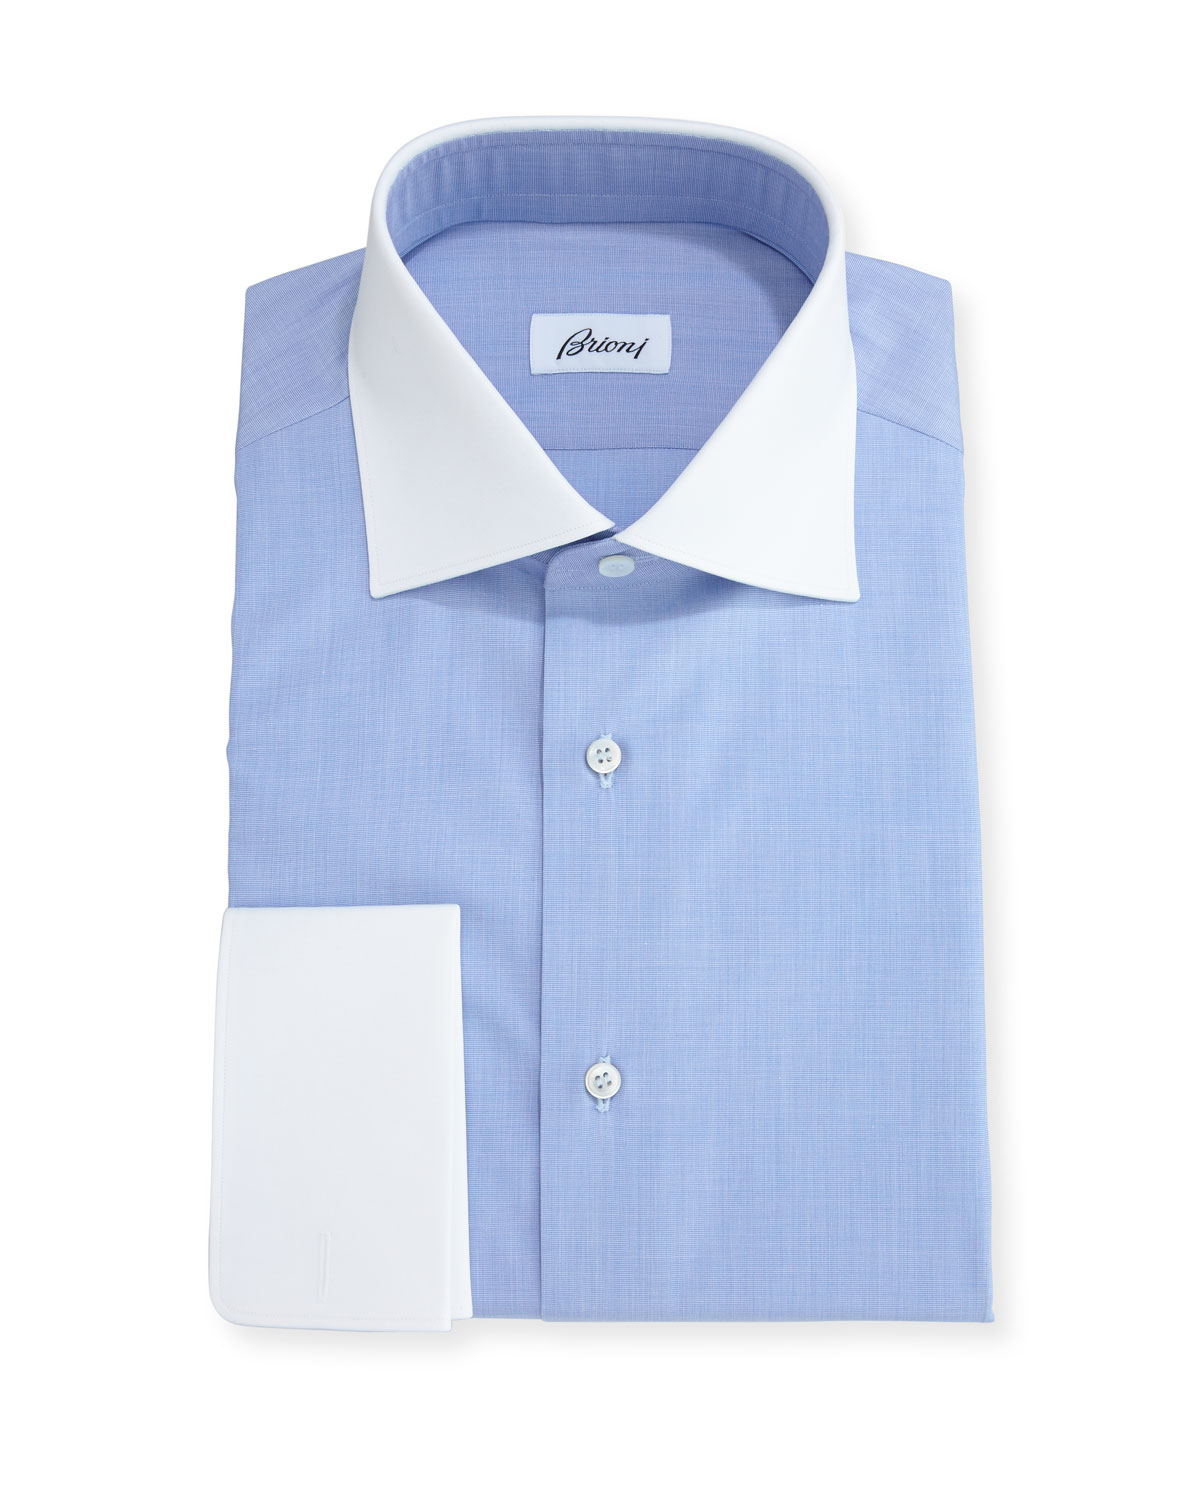 Brioni End On End Dress Shirt With Contrast Collar Cuffs Blue